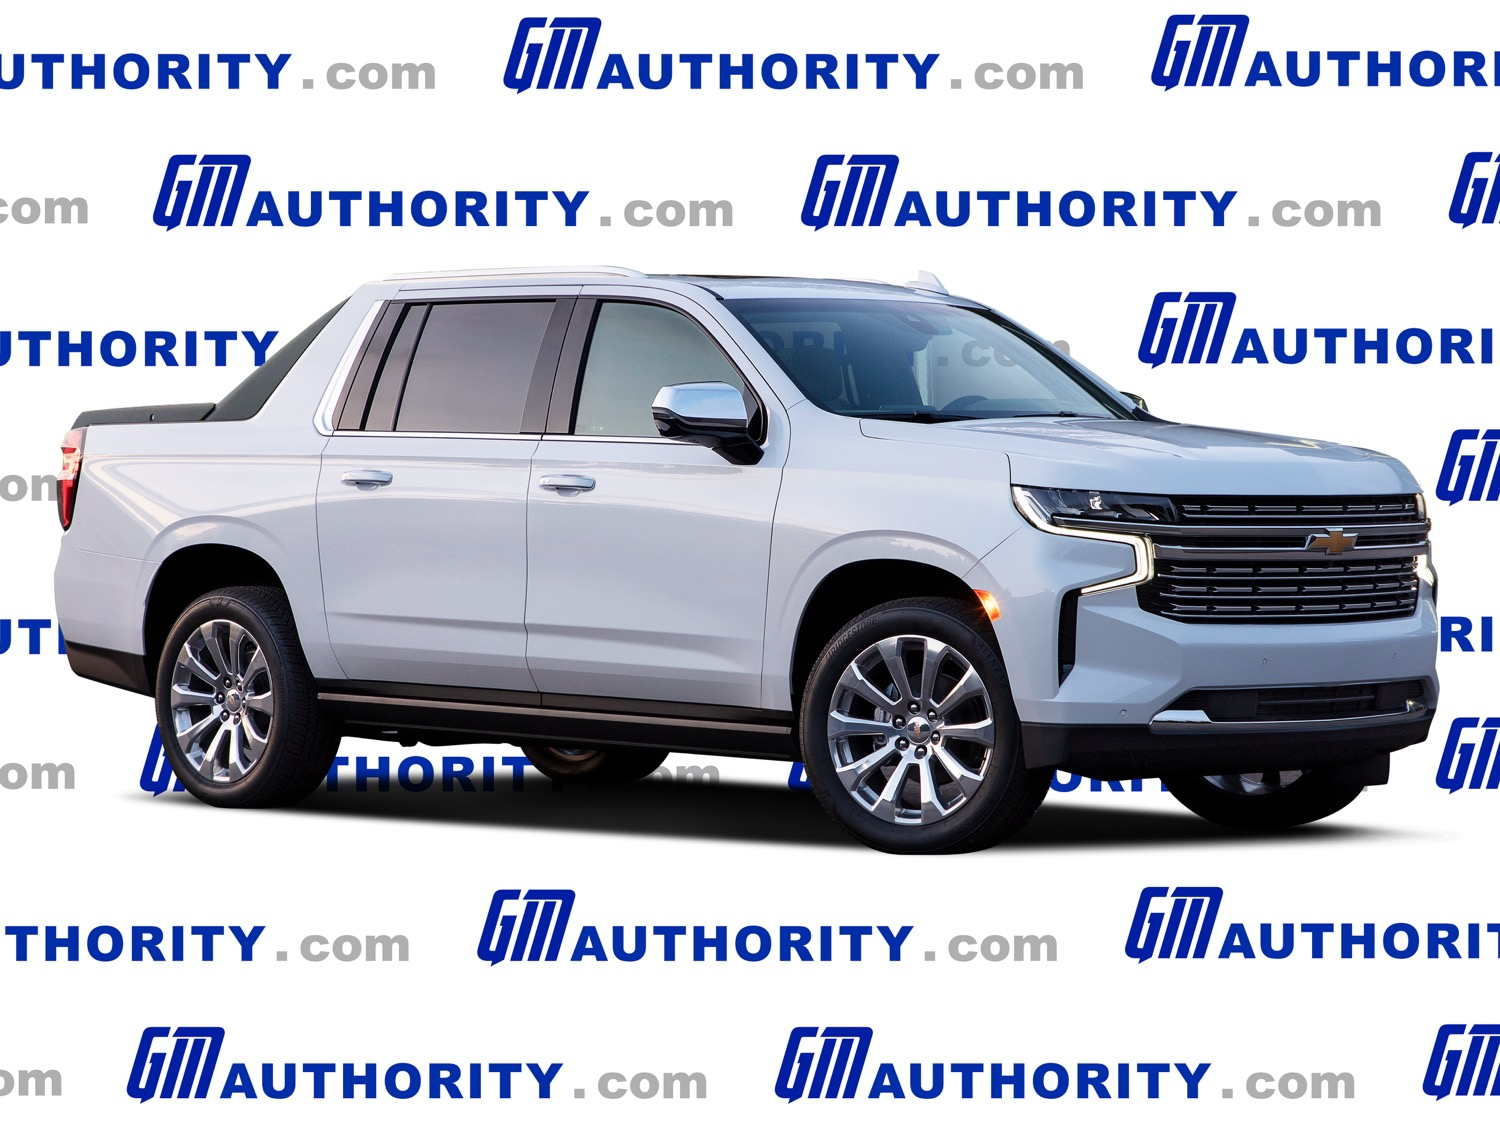 2021 Chevrolet Avalanche Rendered | Gm Authority 2021 Chevy Silverado 2500 Manual, Near Me, New Body Style